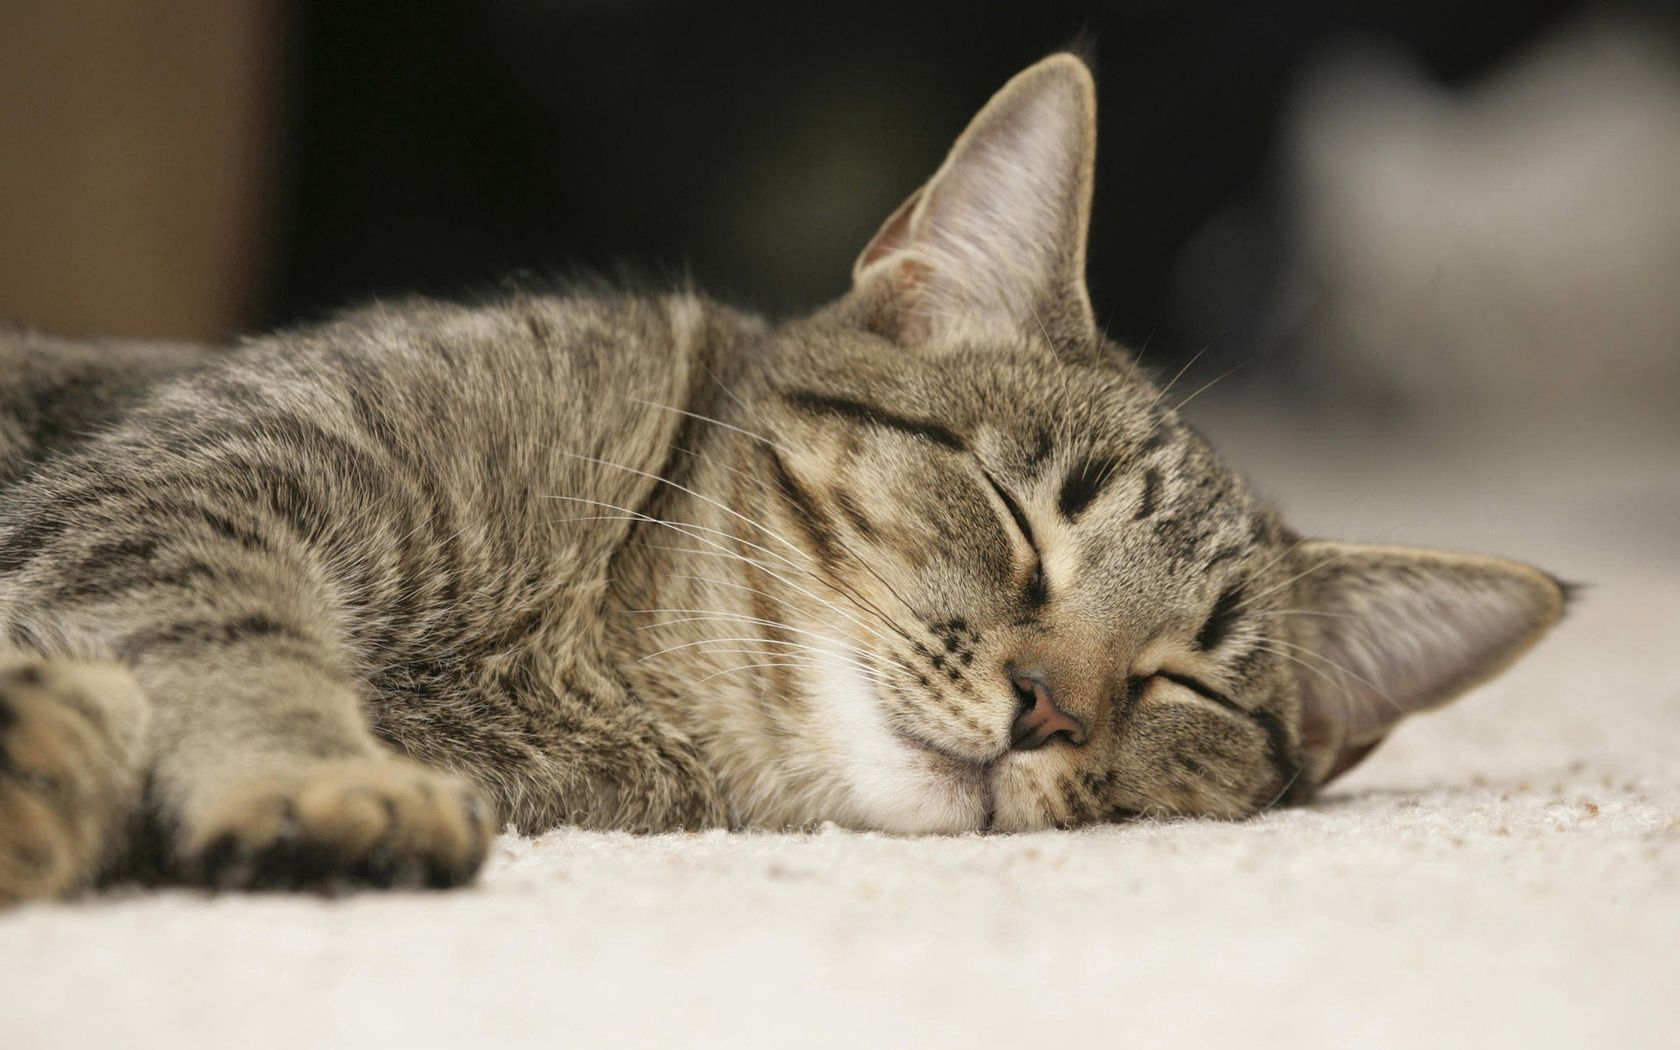 61651 download wallpaper Animals, Cat, Muzzle, Sleep, Dream, Nice, Sweetheart screensavers and pictures for free